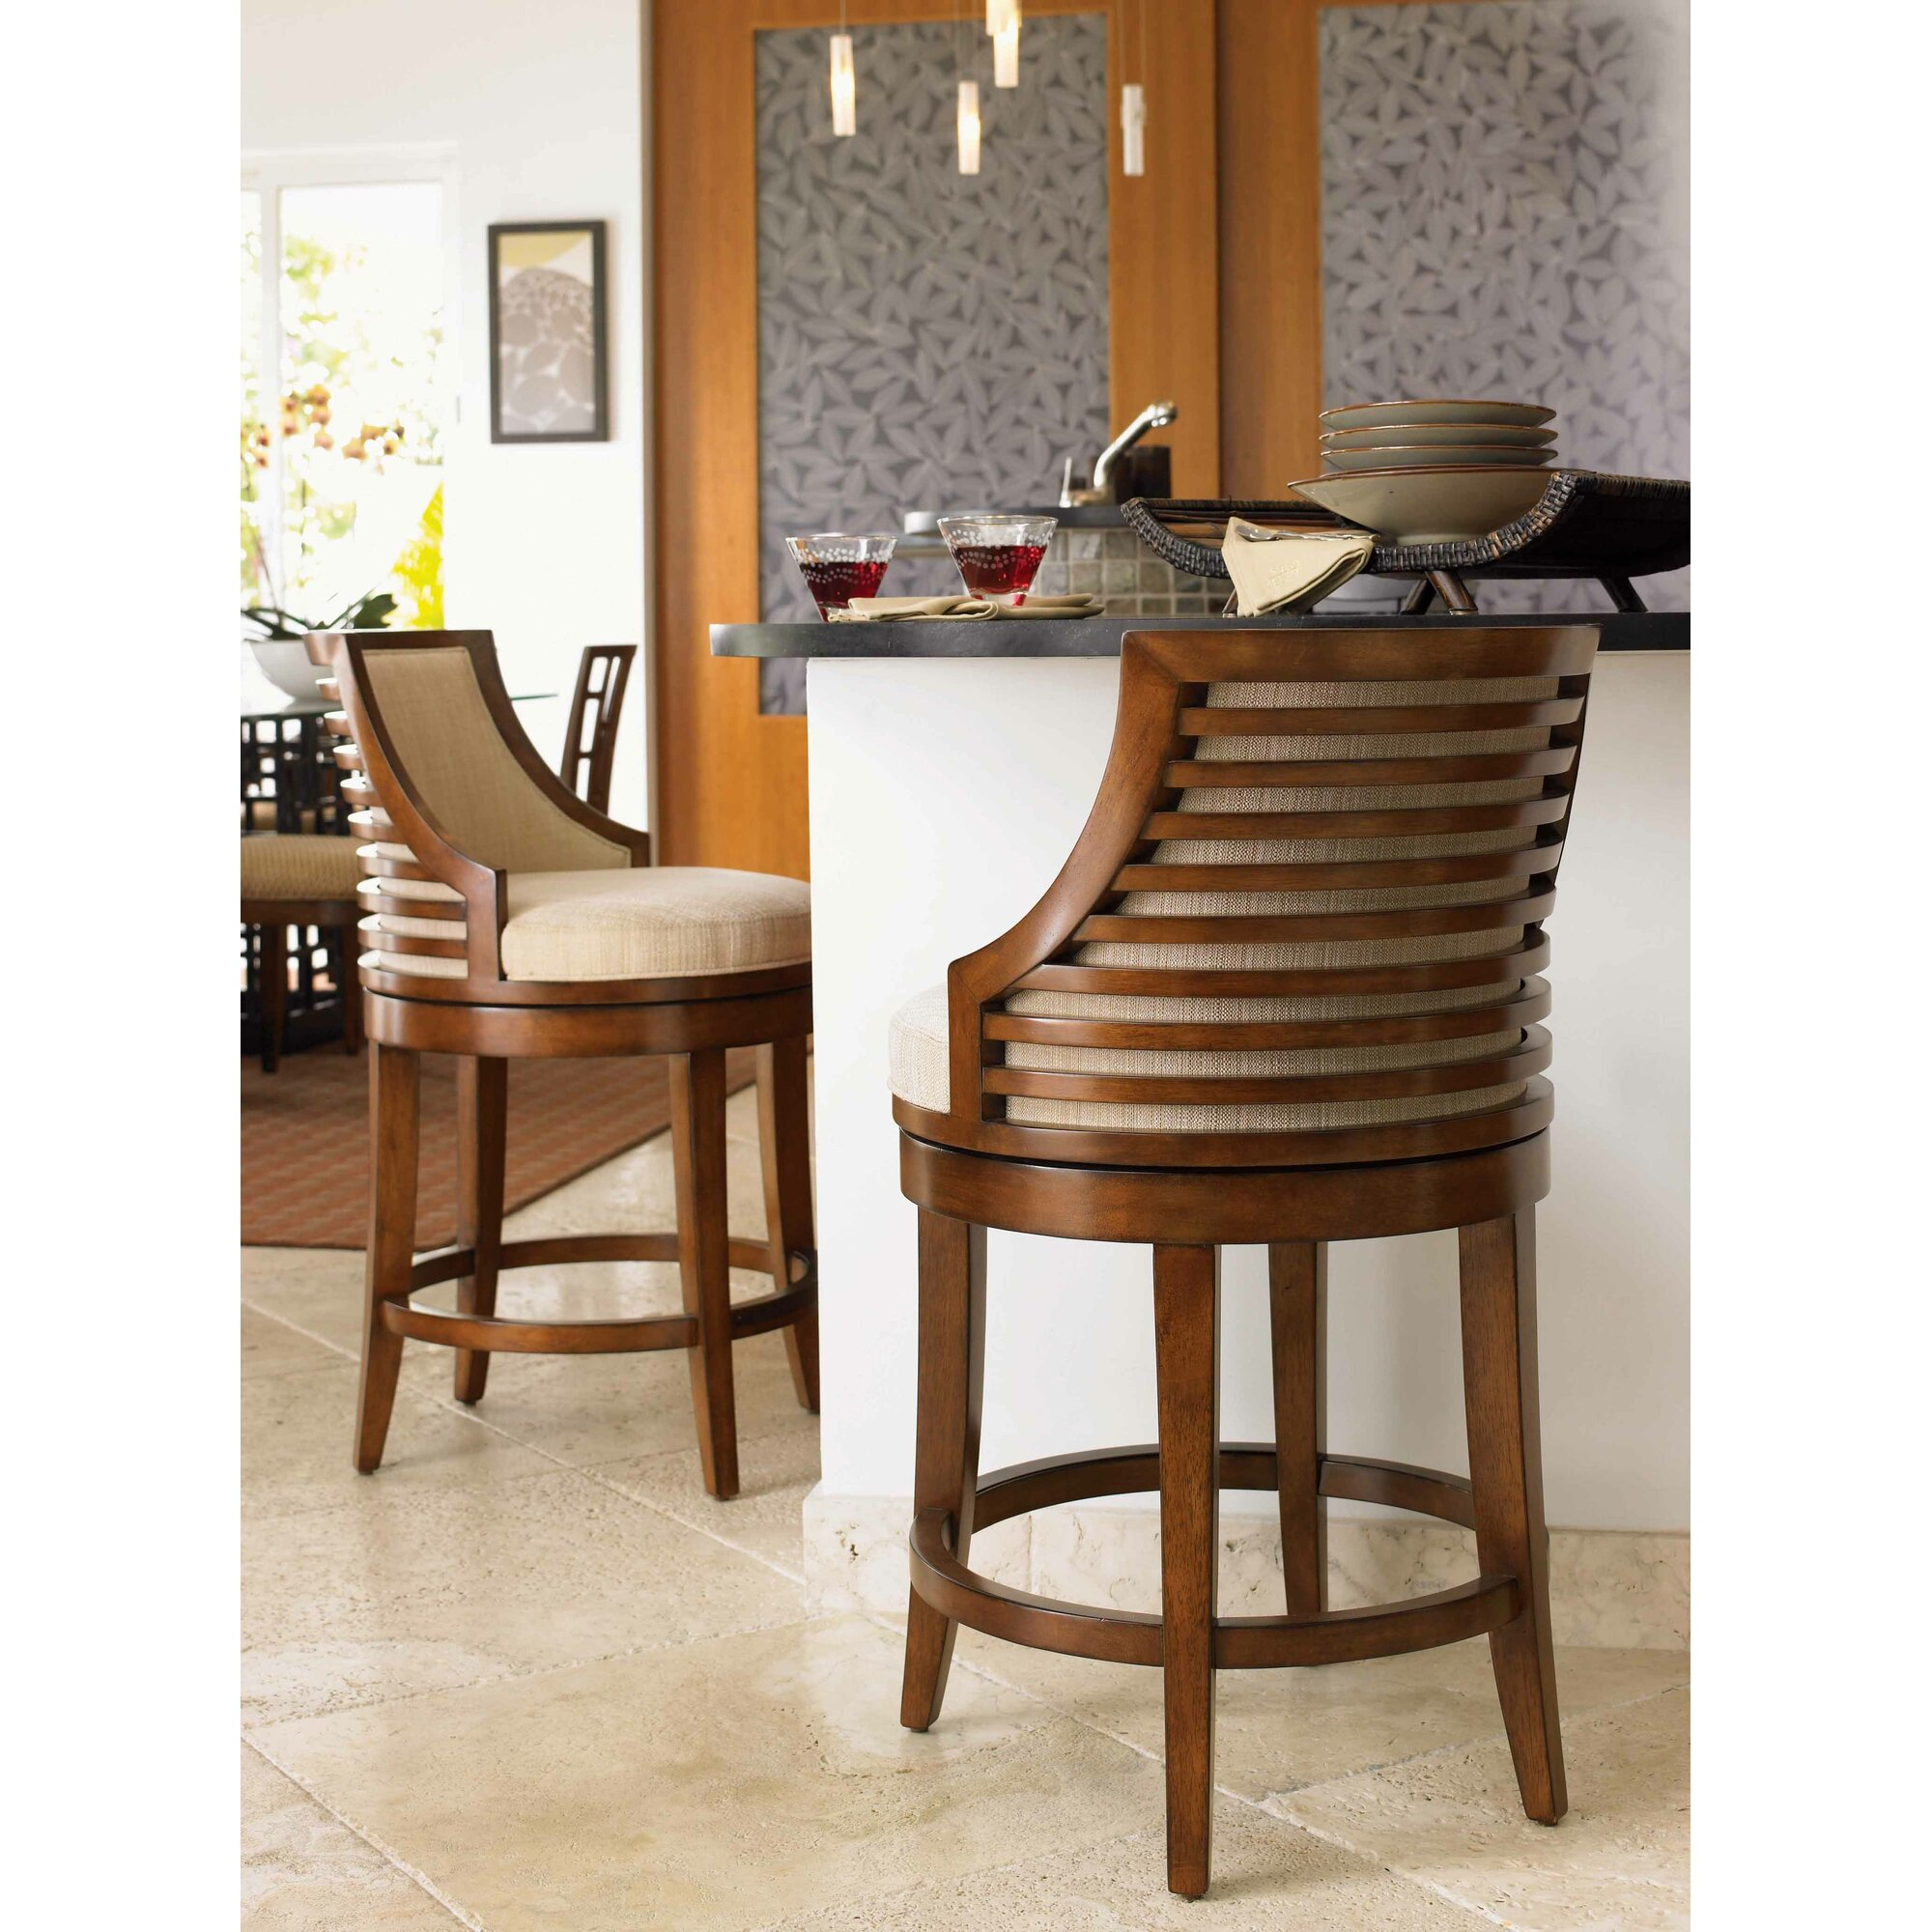 Tommy Bahama Home Ocean Club 24 Quot Swivel Bar Stool